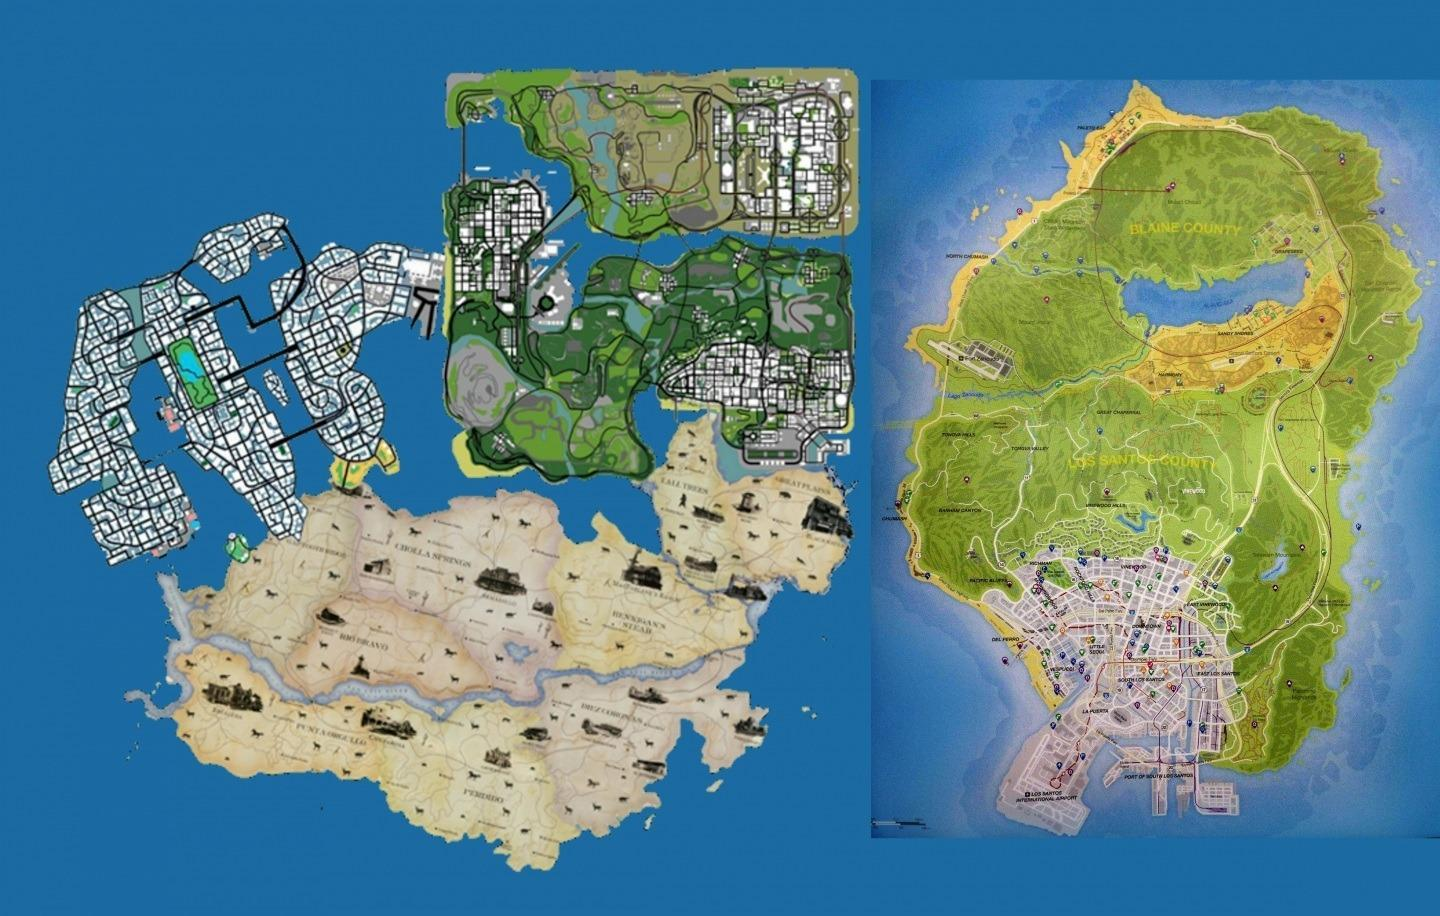 Gta 6 Map Of America.Gta 6 Grand Theft Auto Vi Release Date Maps Location And News